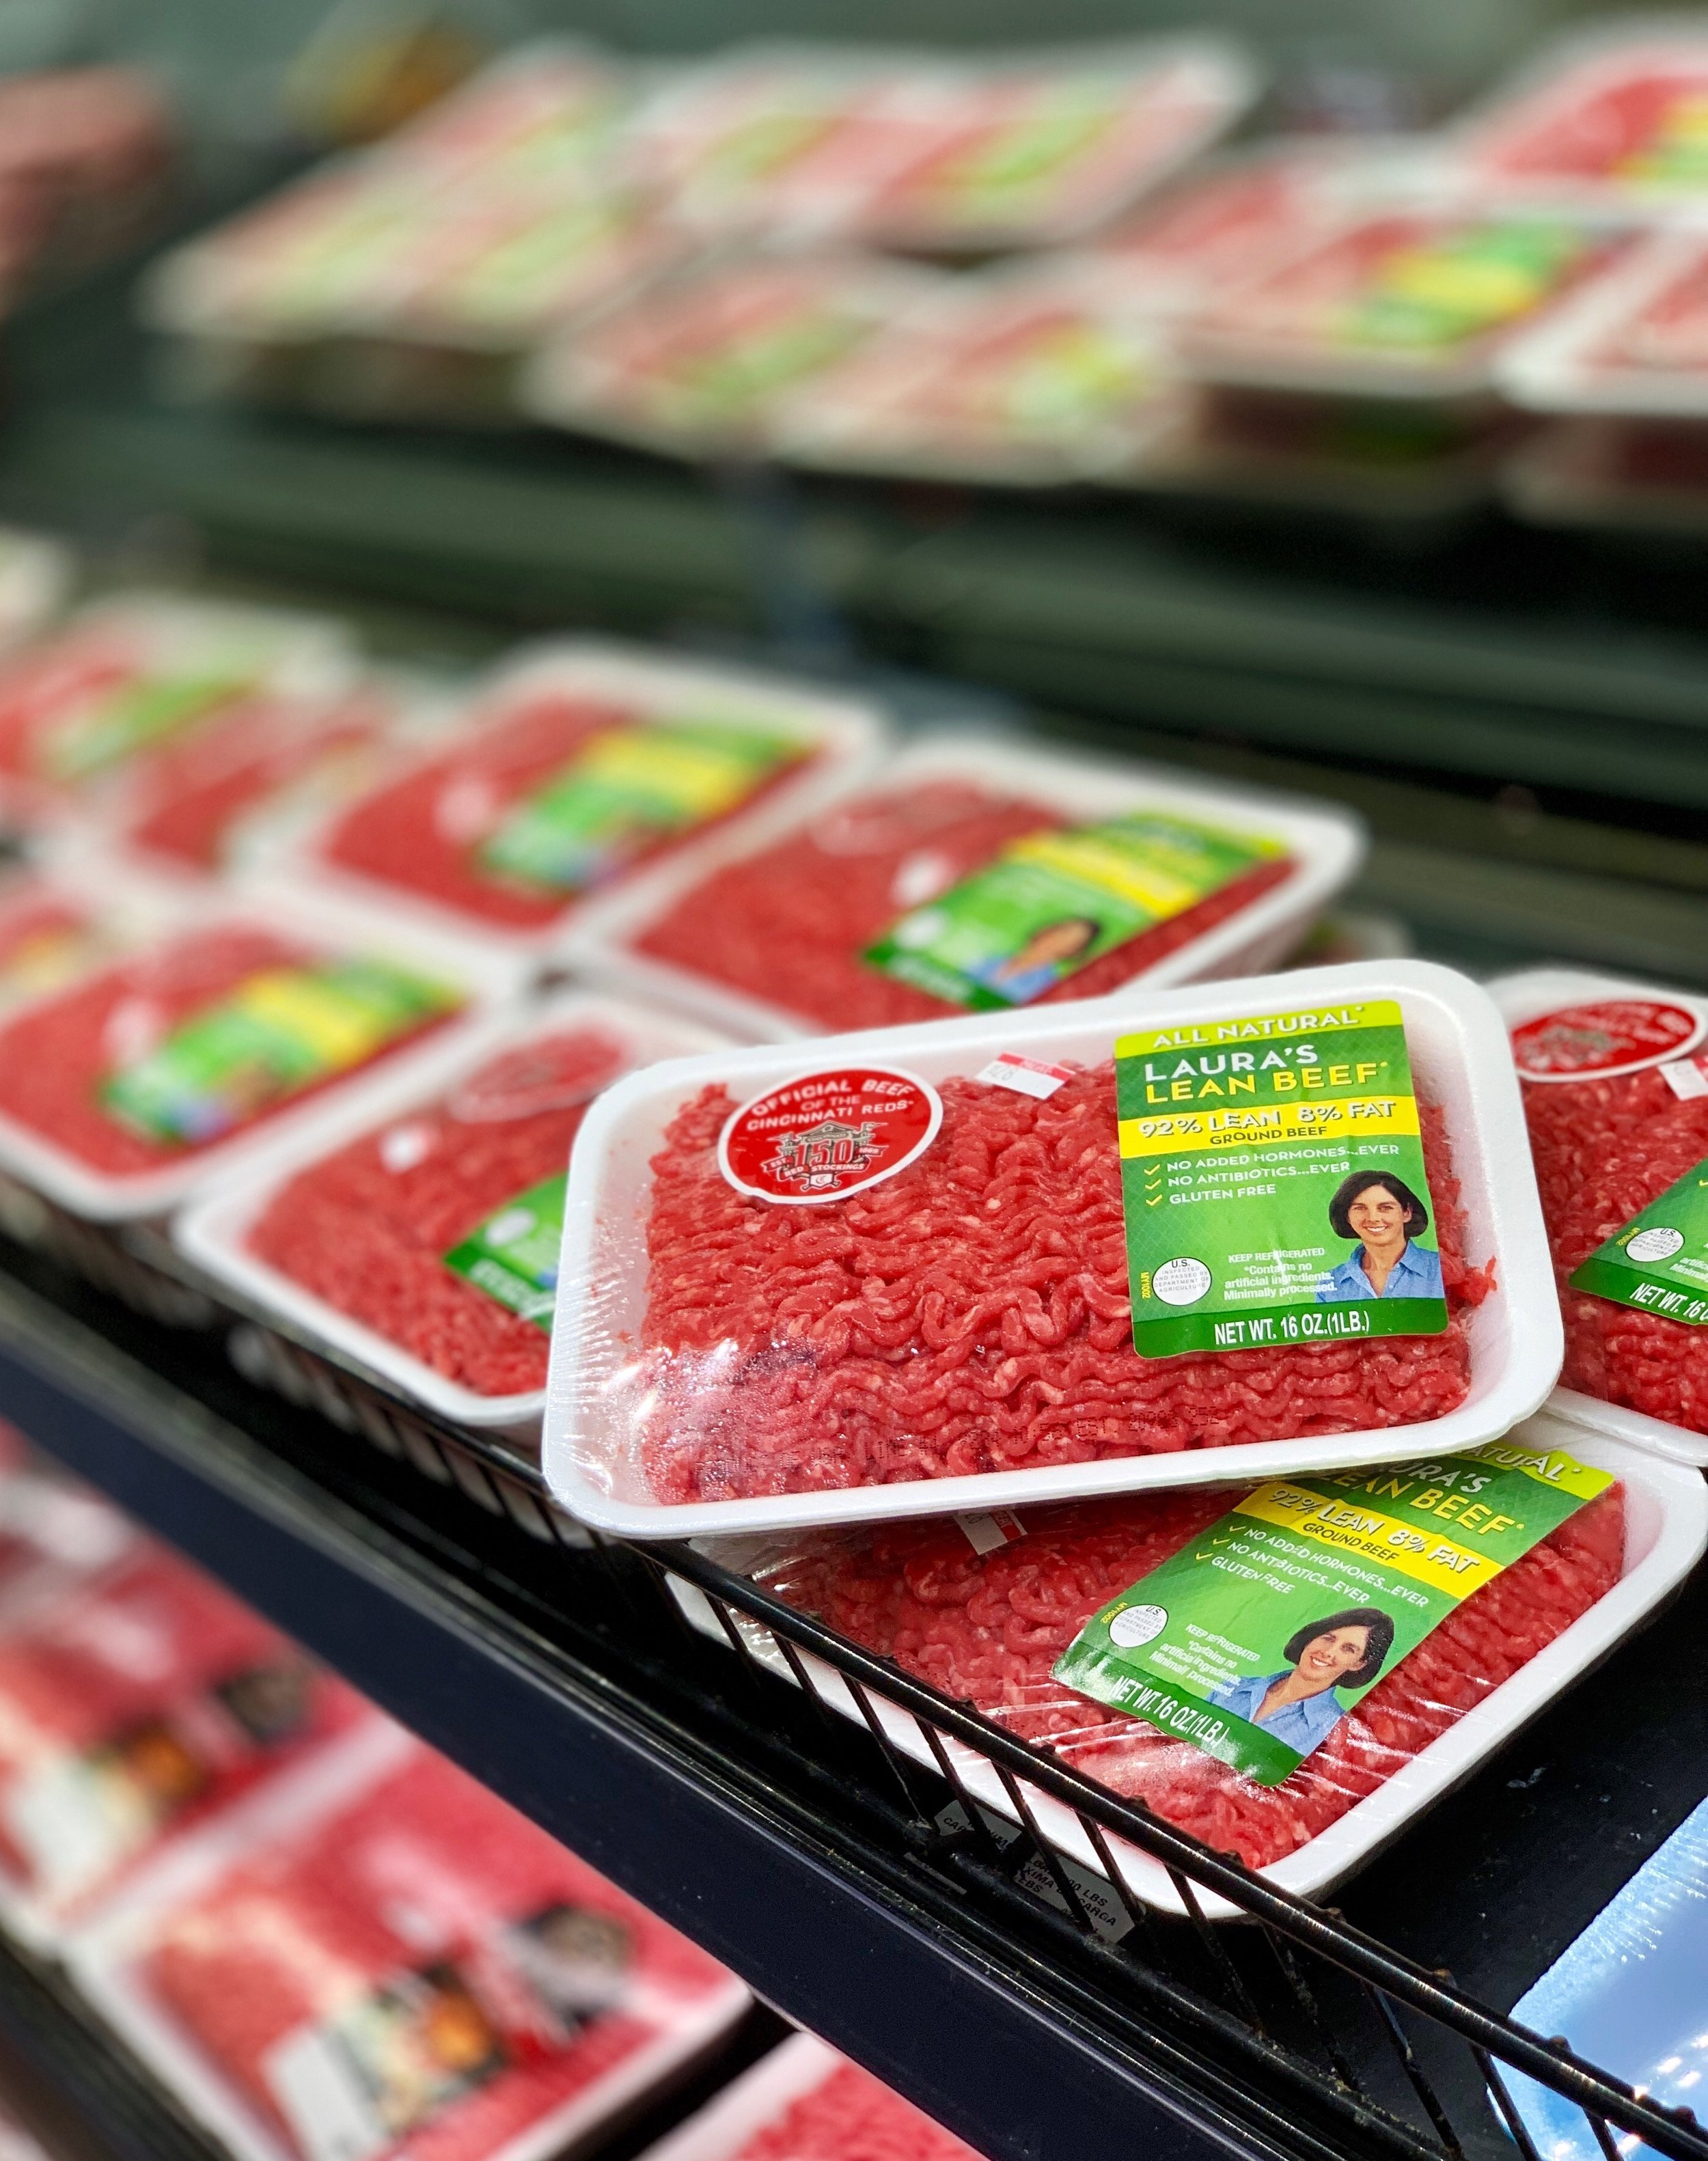 Find Laura's Lean Ground Beef or Ground Beef Patties at Kroger nationwide.